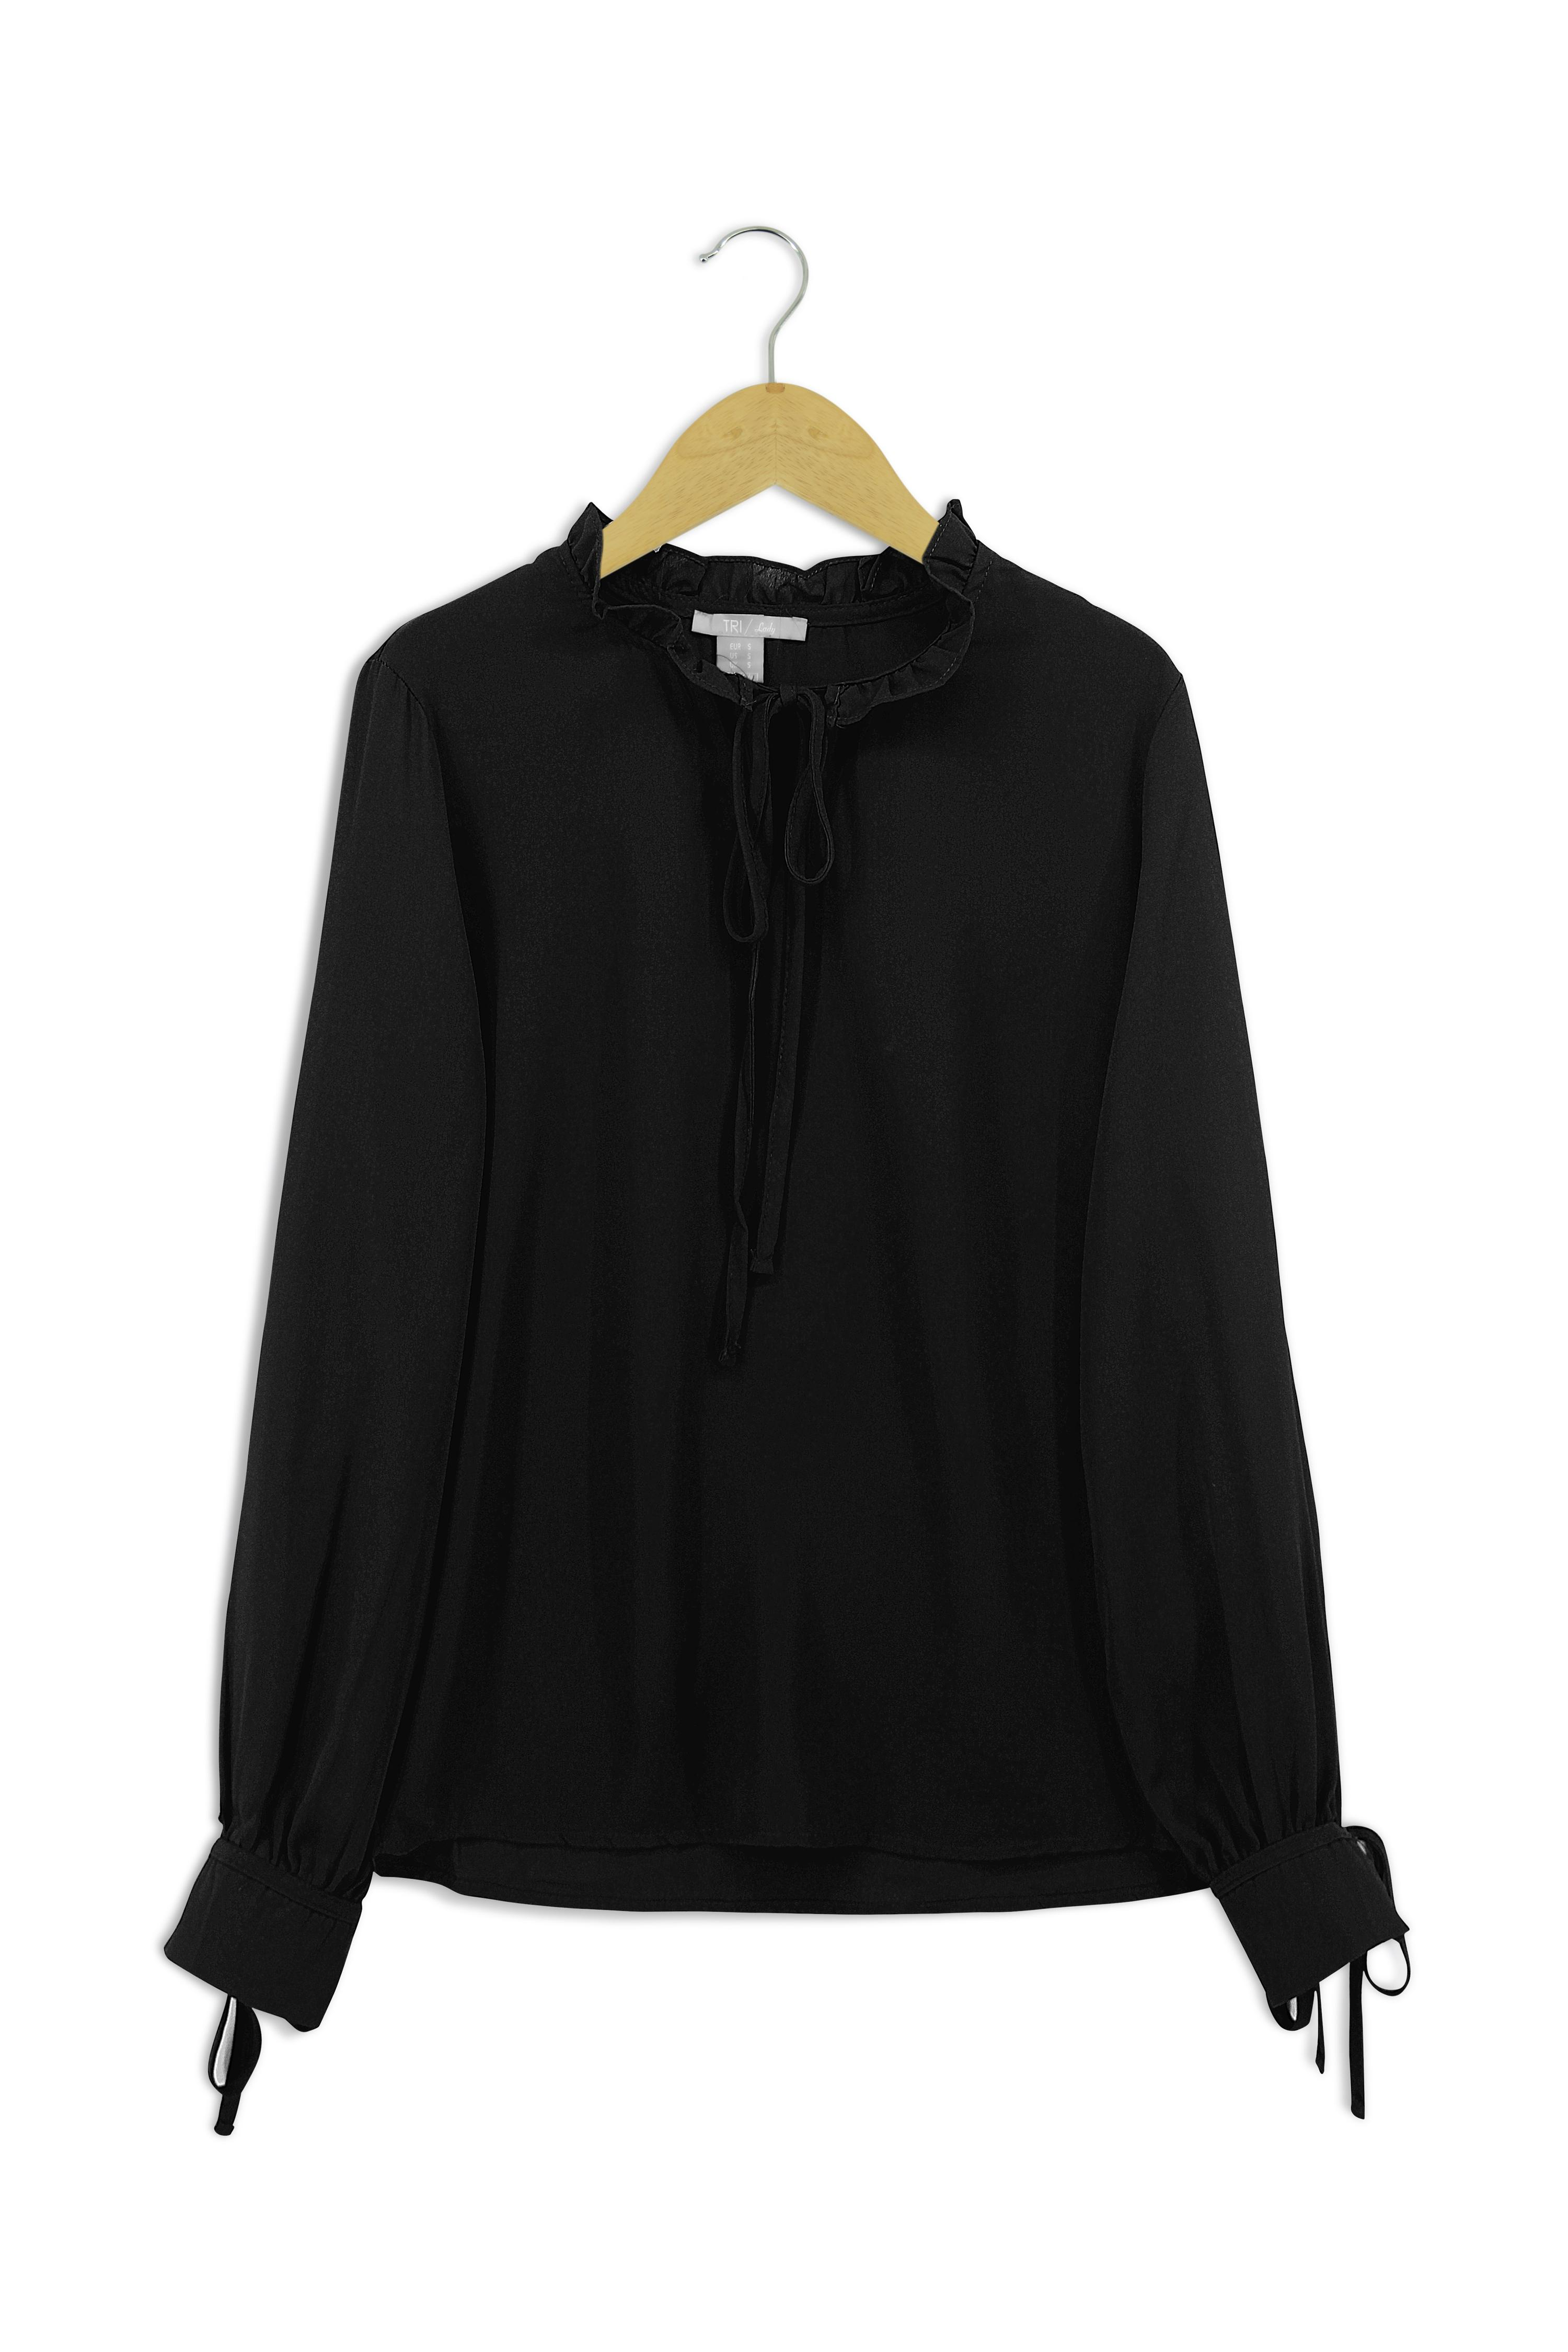 Lady Blouse Plain (LBP-4011)